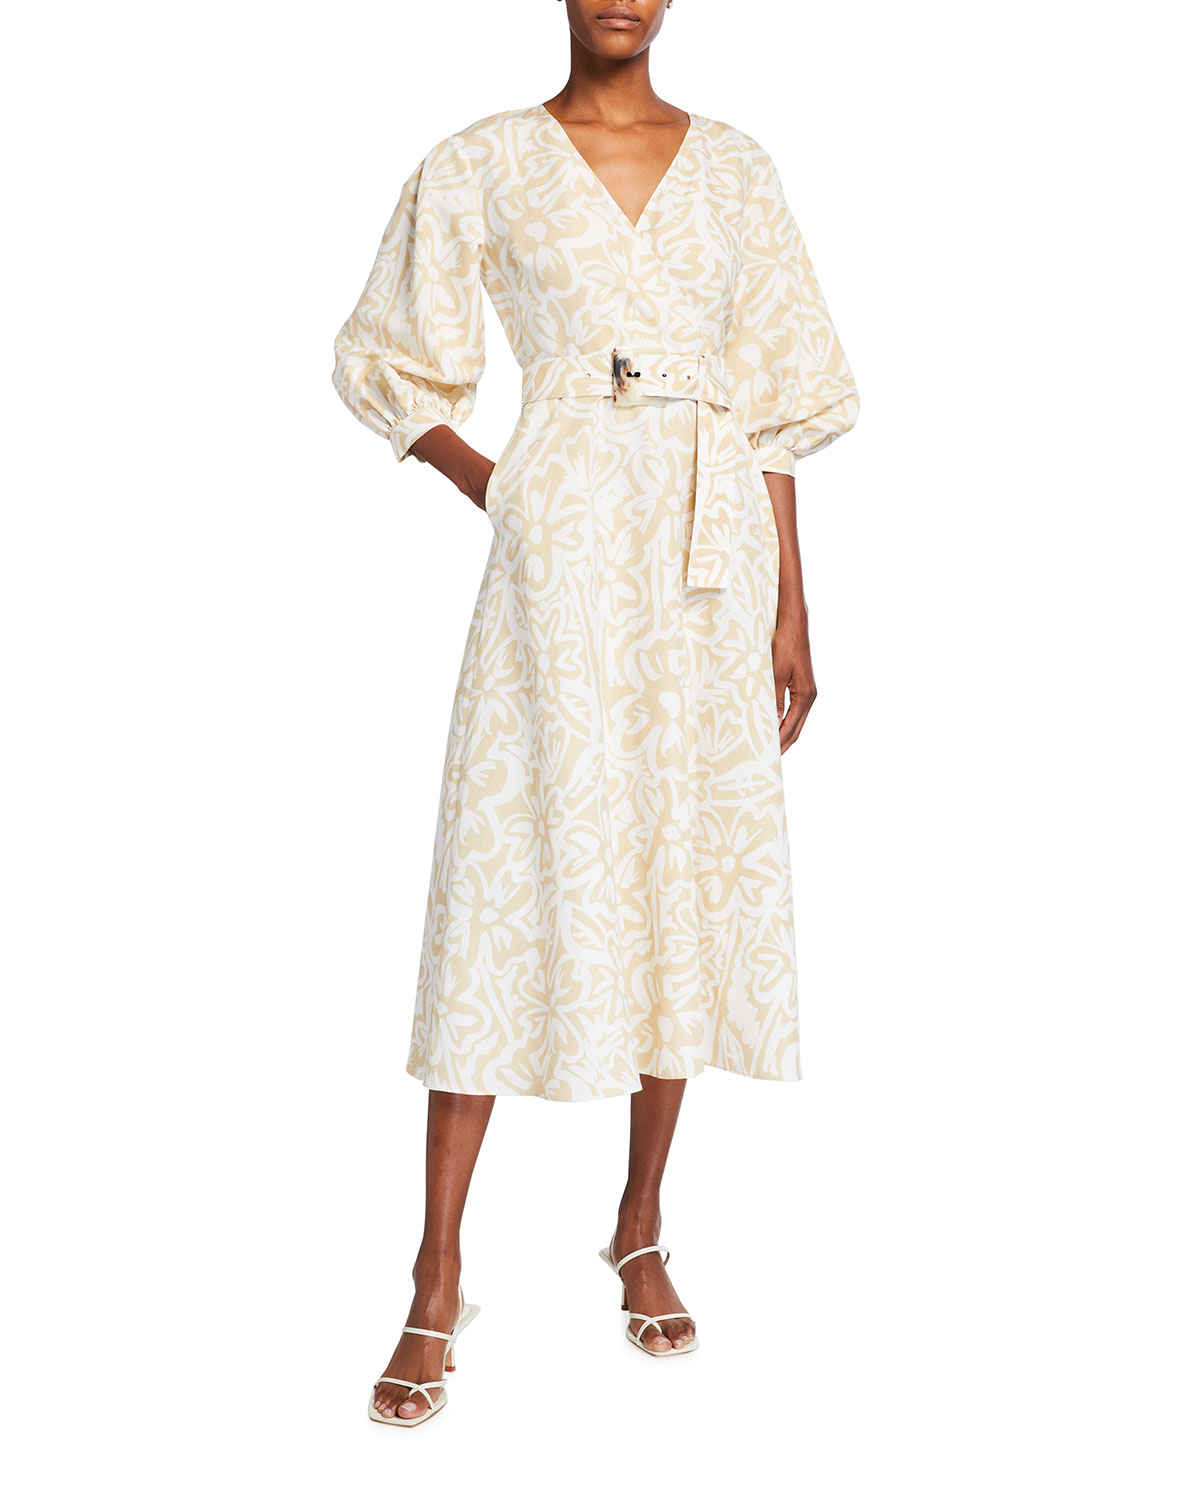 Lafayette 148 New York Joanna Light Garden Print Midi Dress